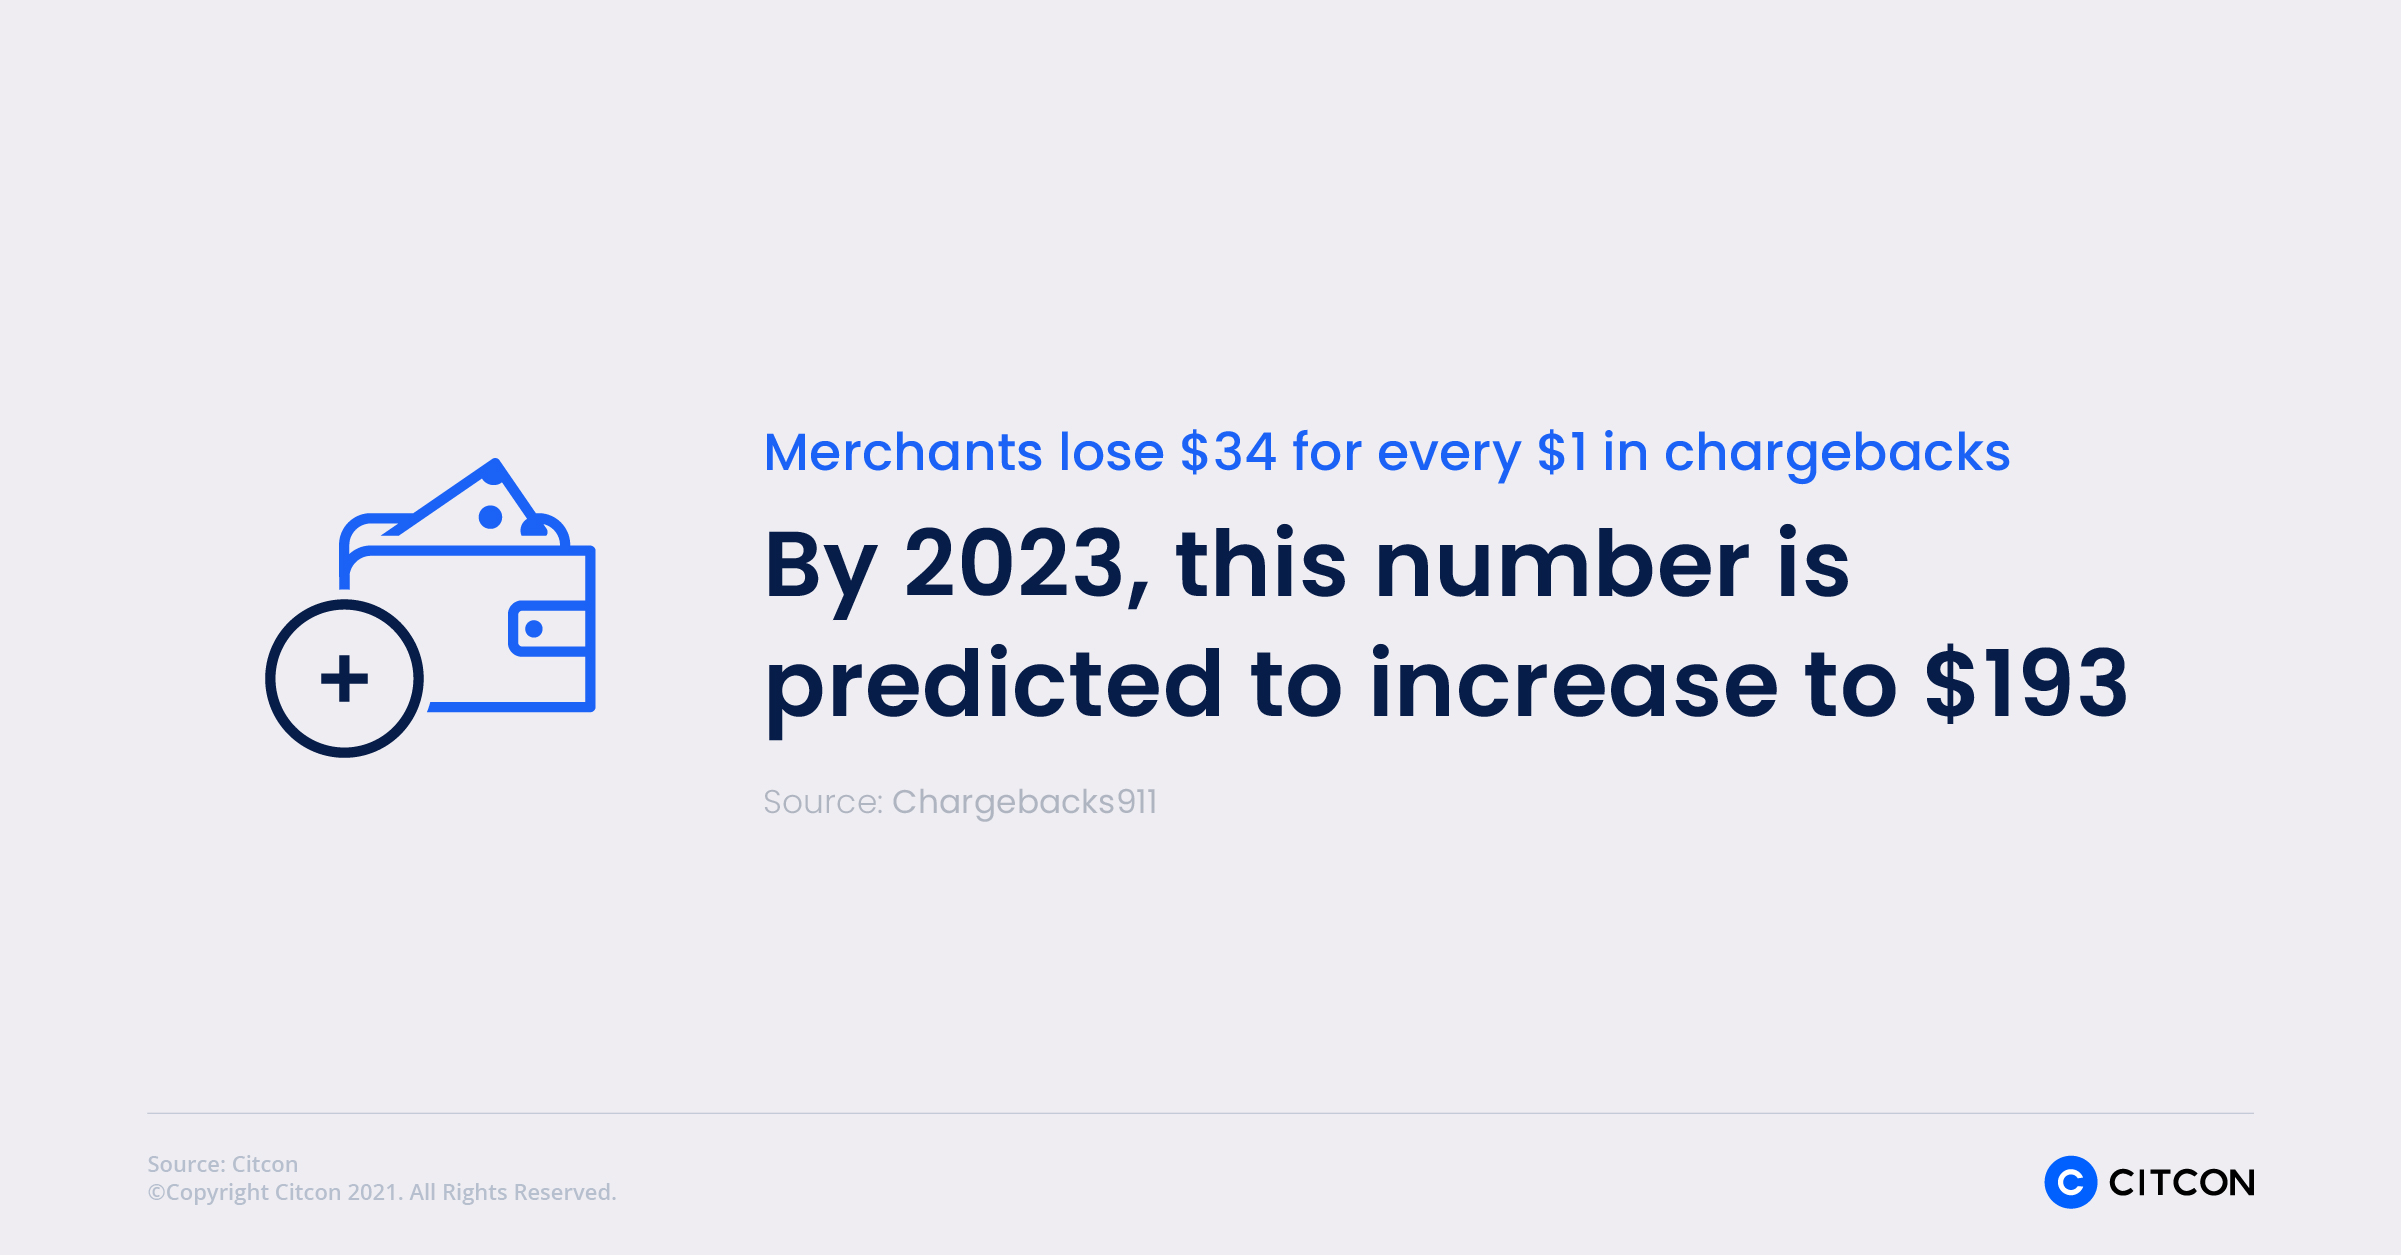 Citcon: chargeback statistics - 2023 it is increased to $193